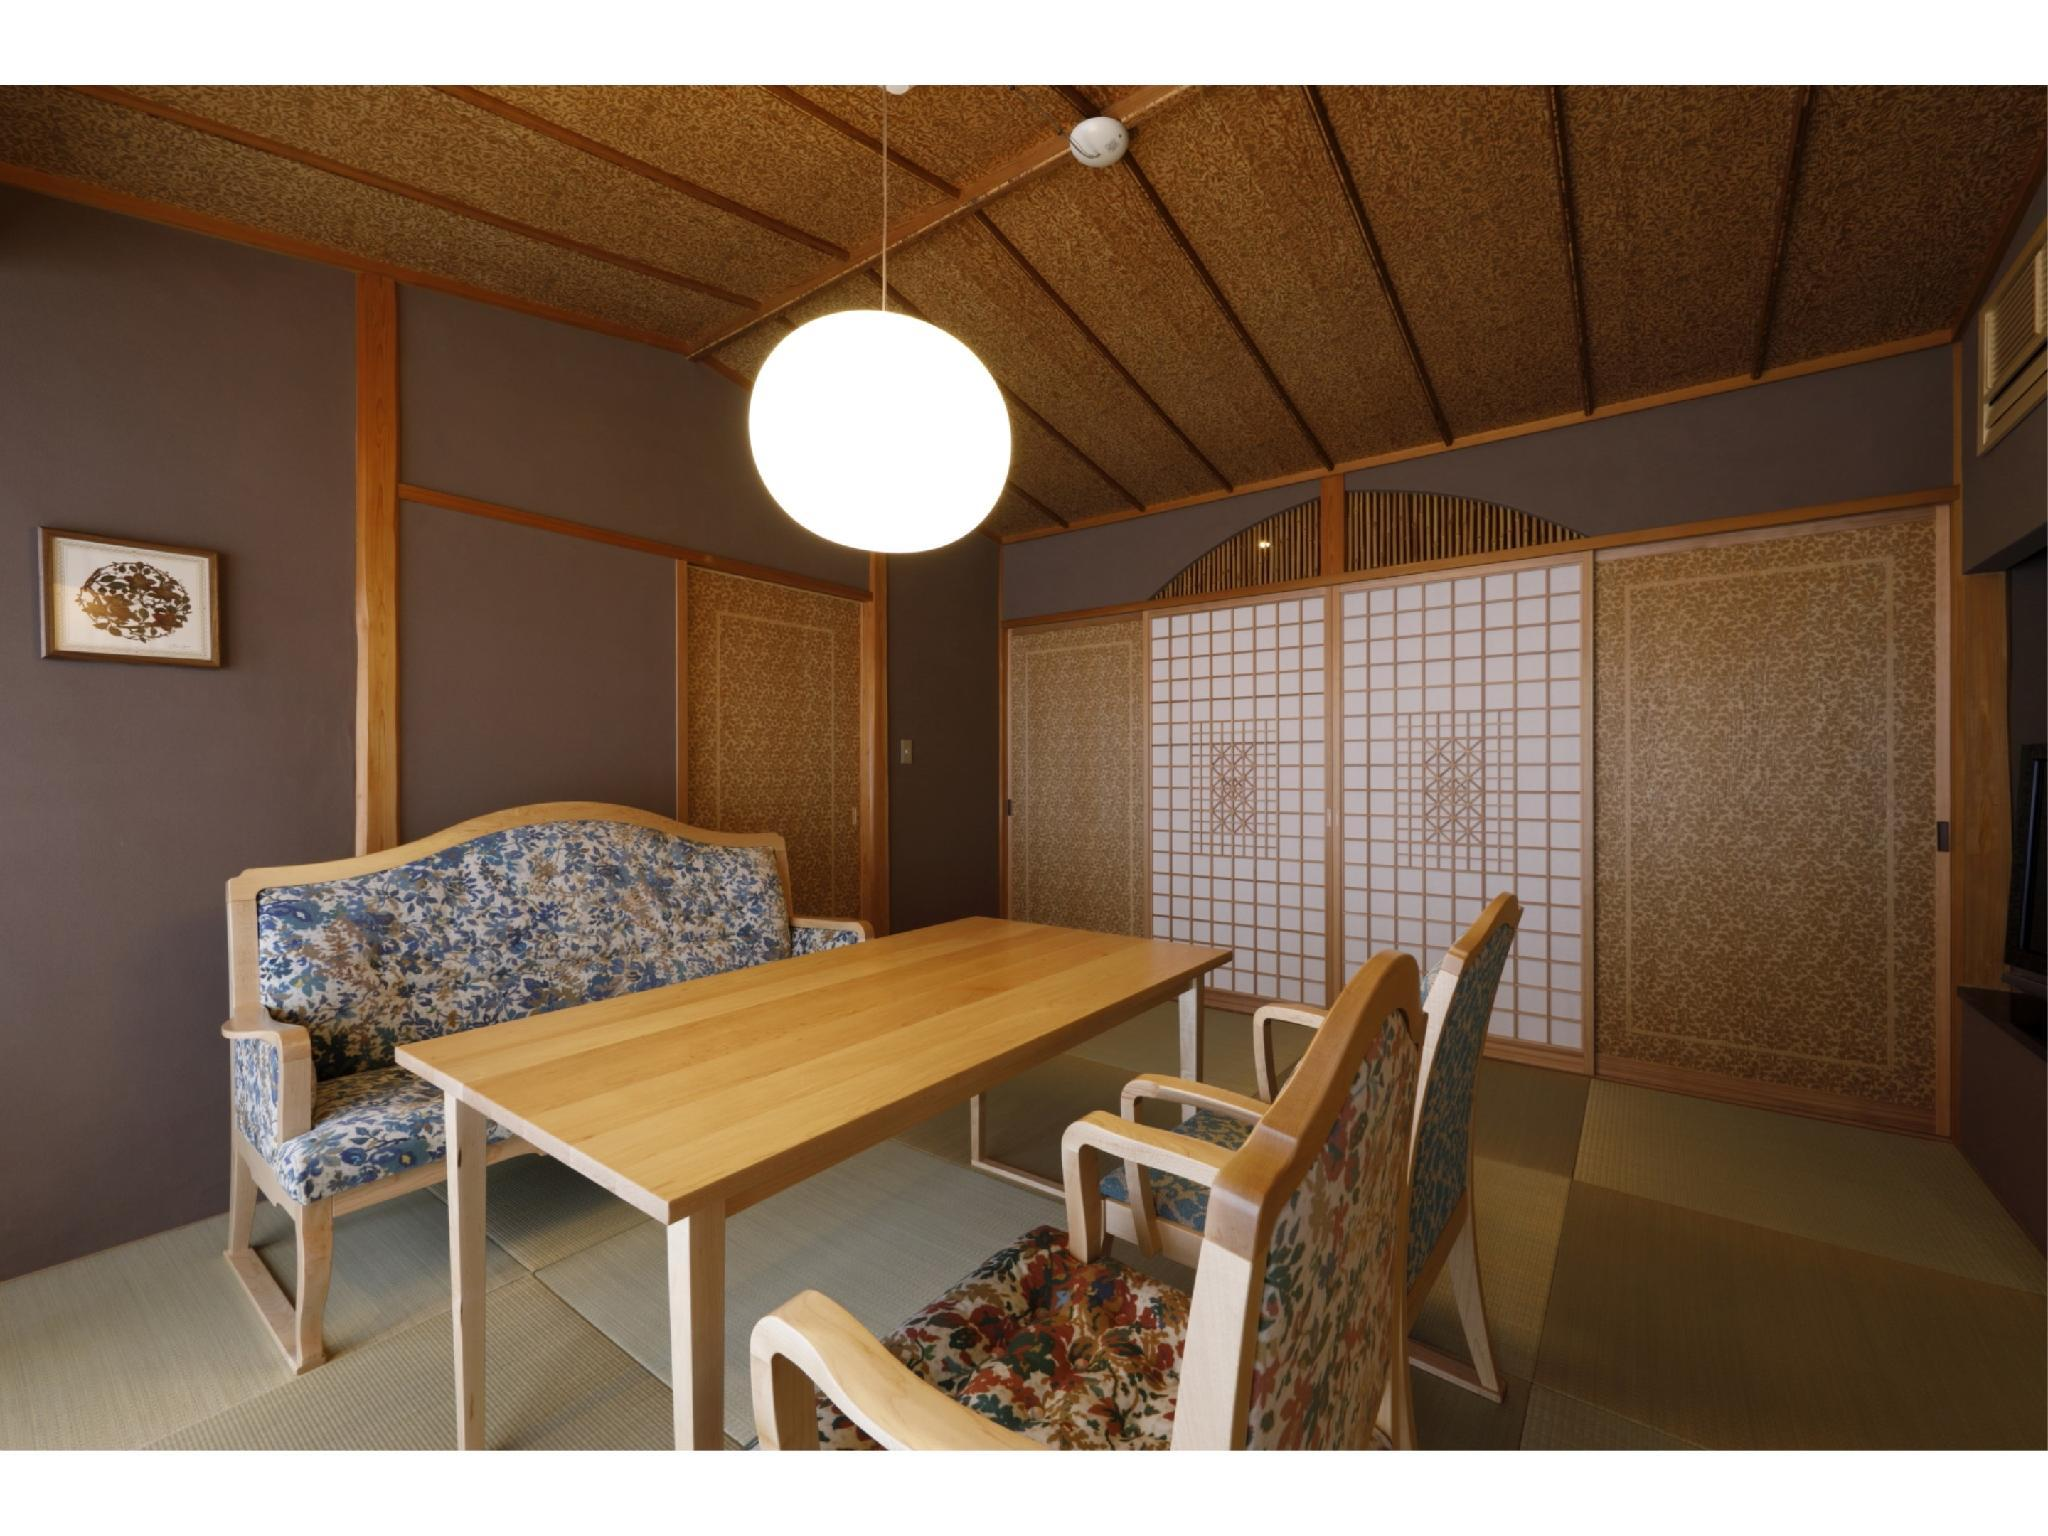 다다미 객실(별채/특별실/노천탕) (Detached Special Japanese-style Room with Open-air Hot Spring Bath)